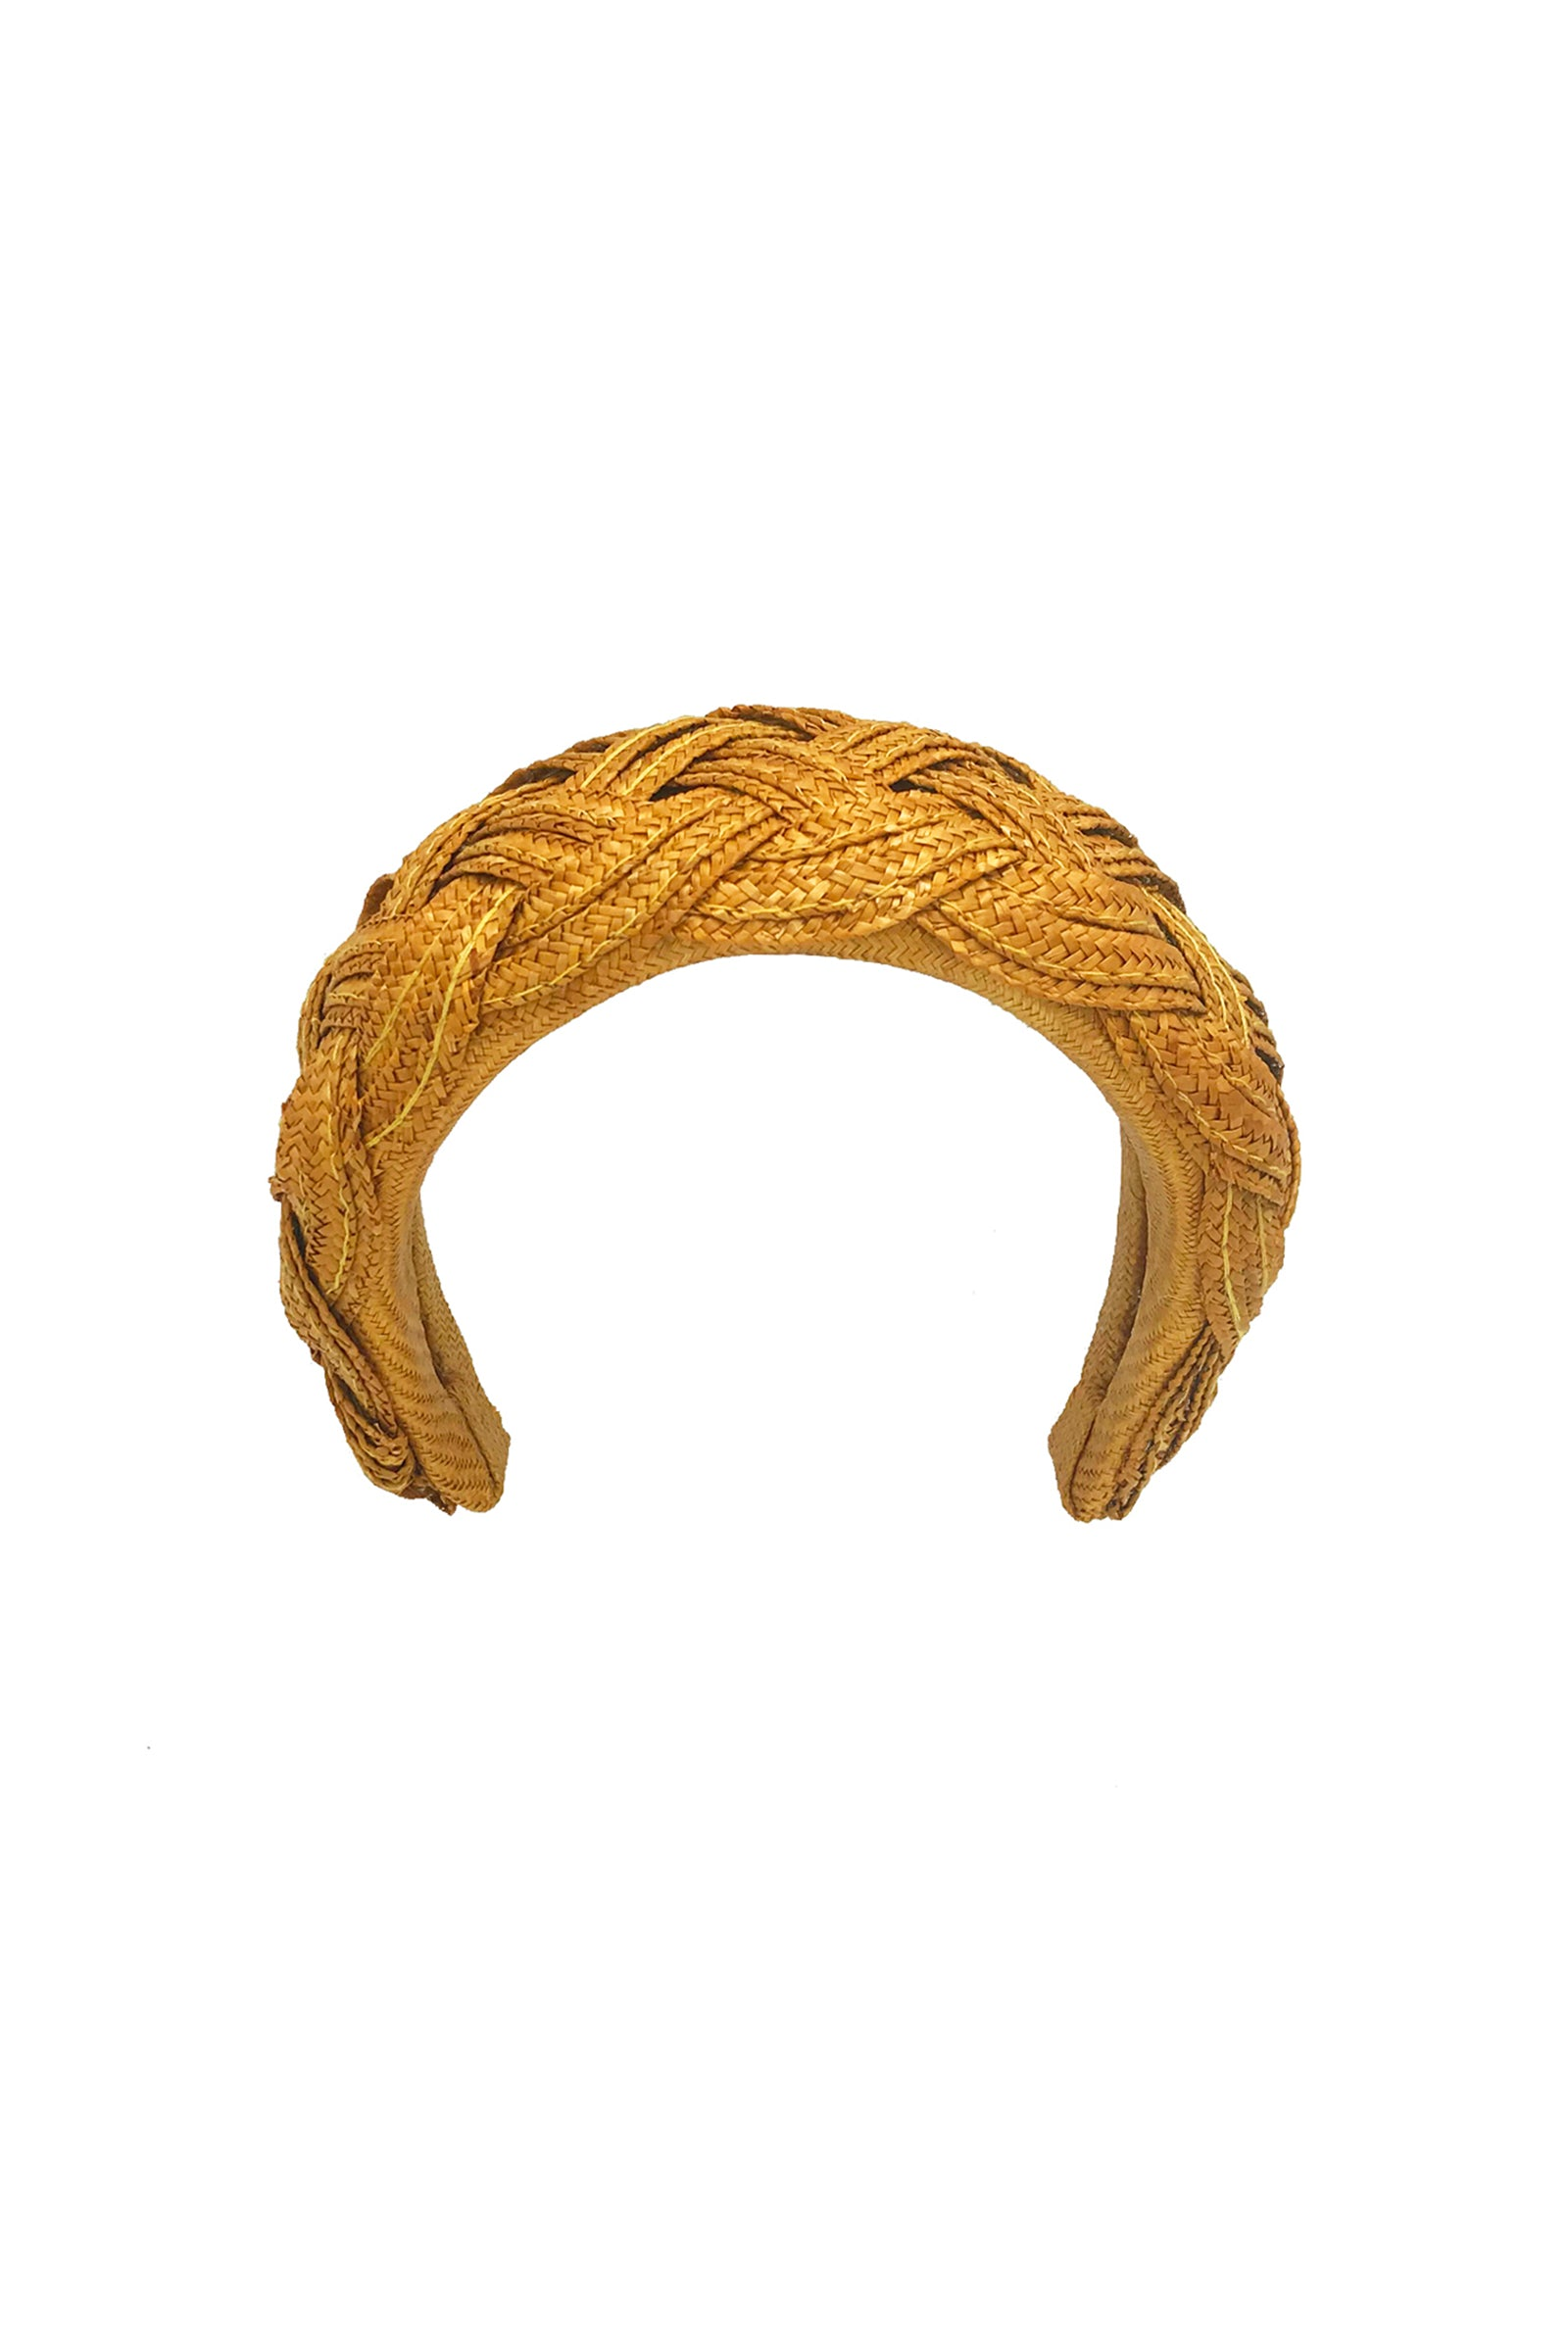 Straw Plaited Band